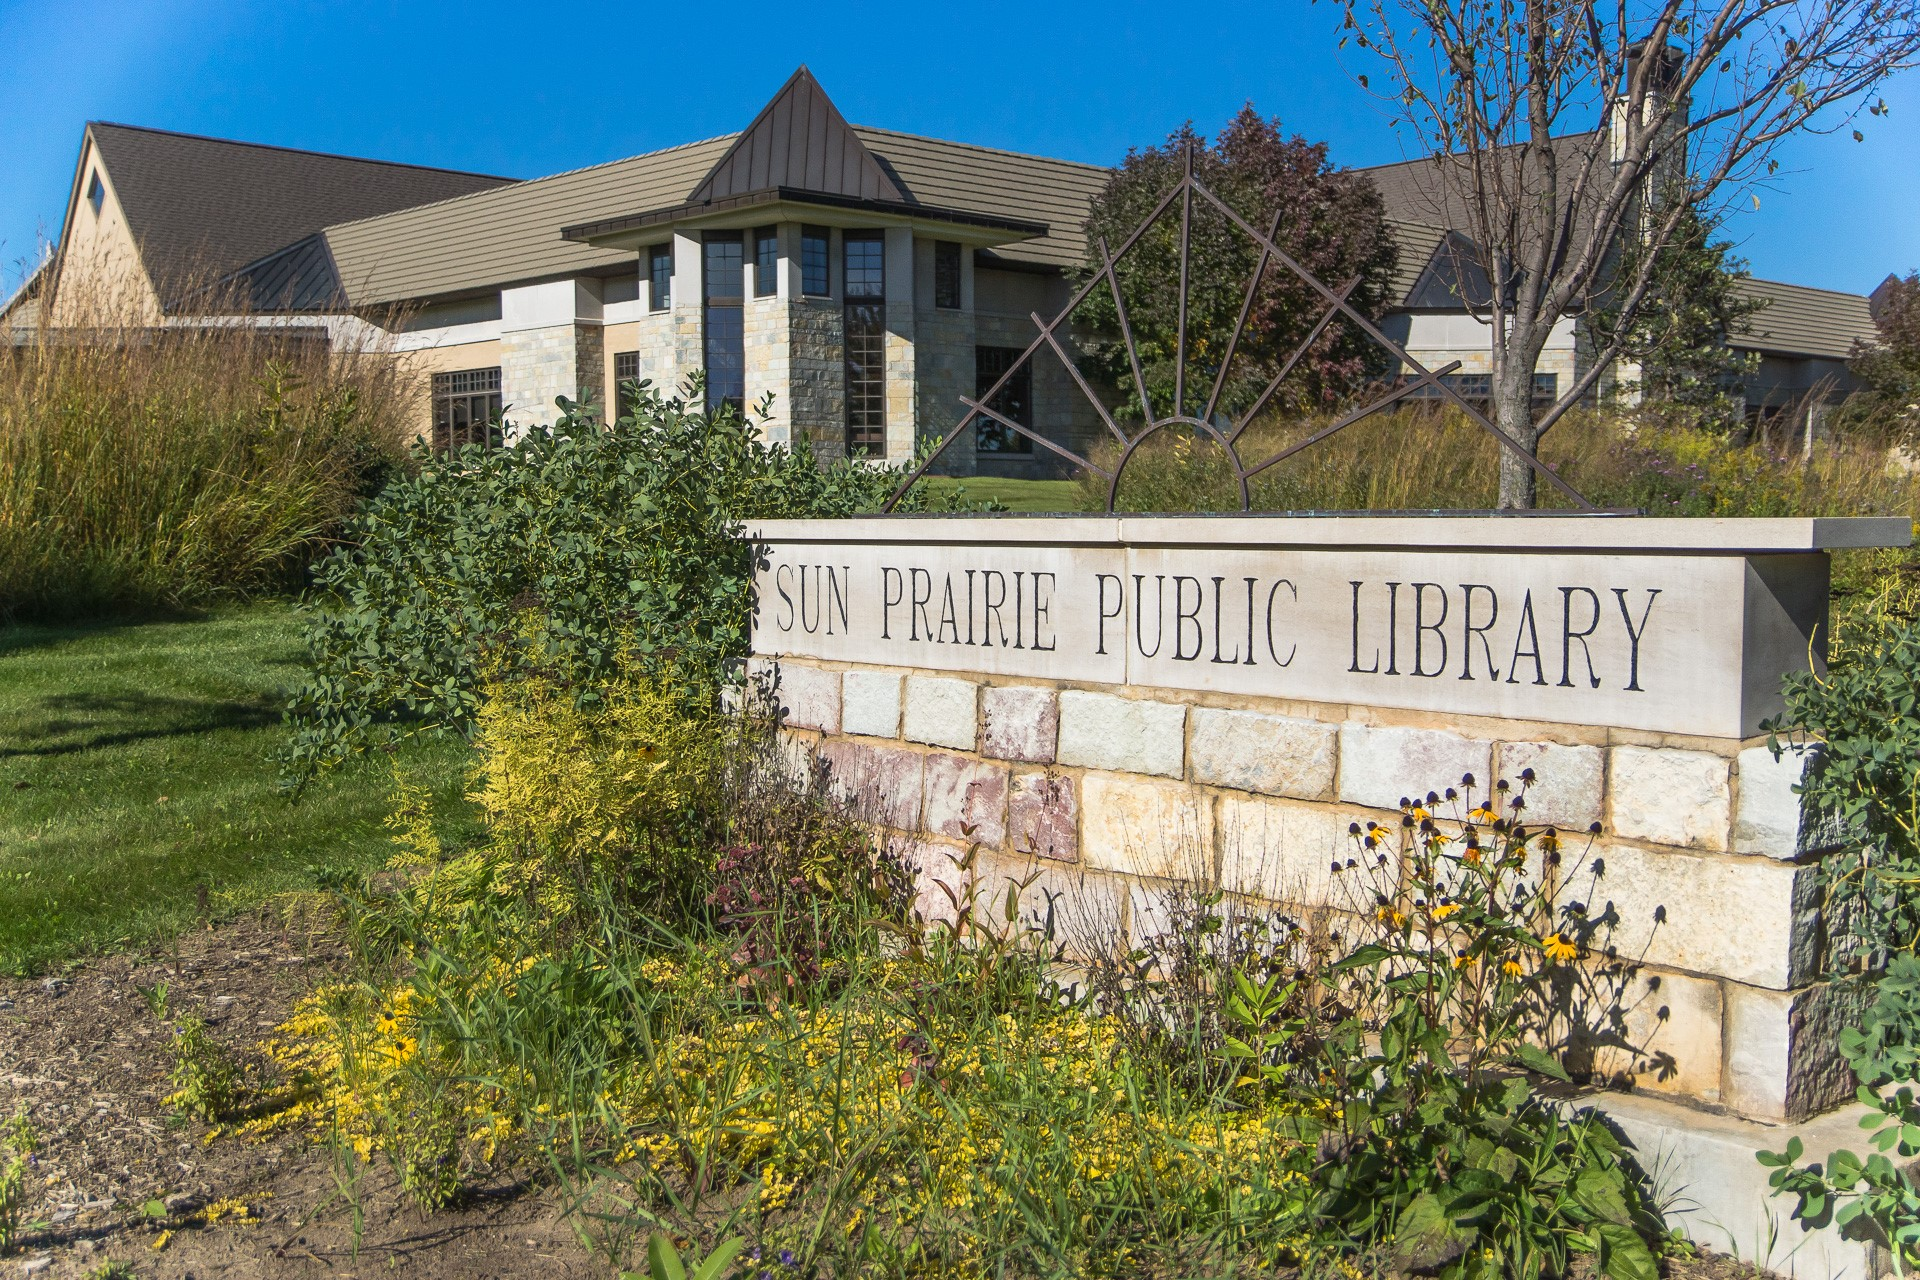 Sun Prairie Public Library Entrance